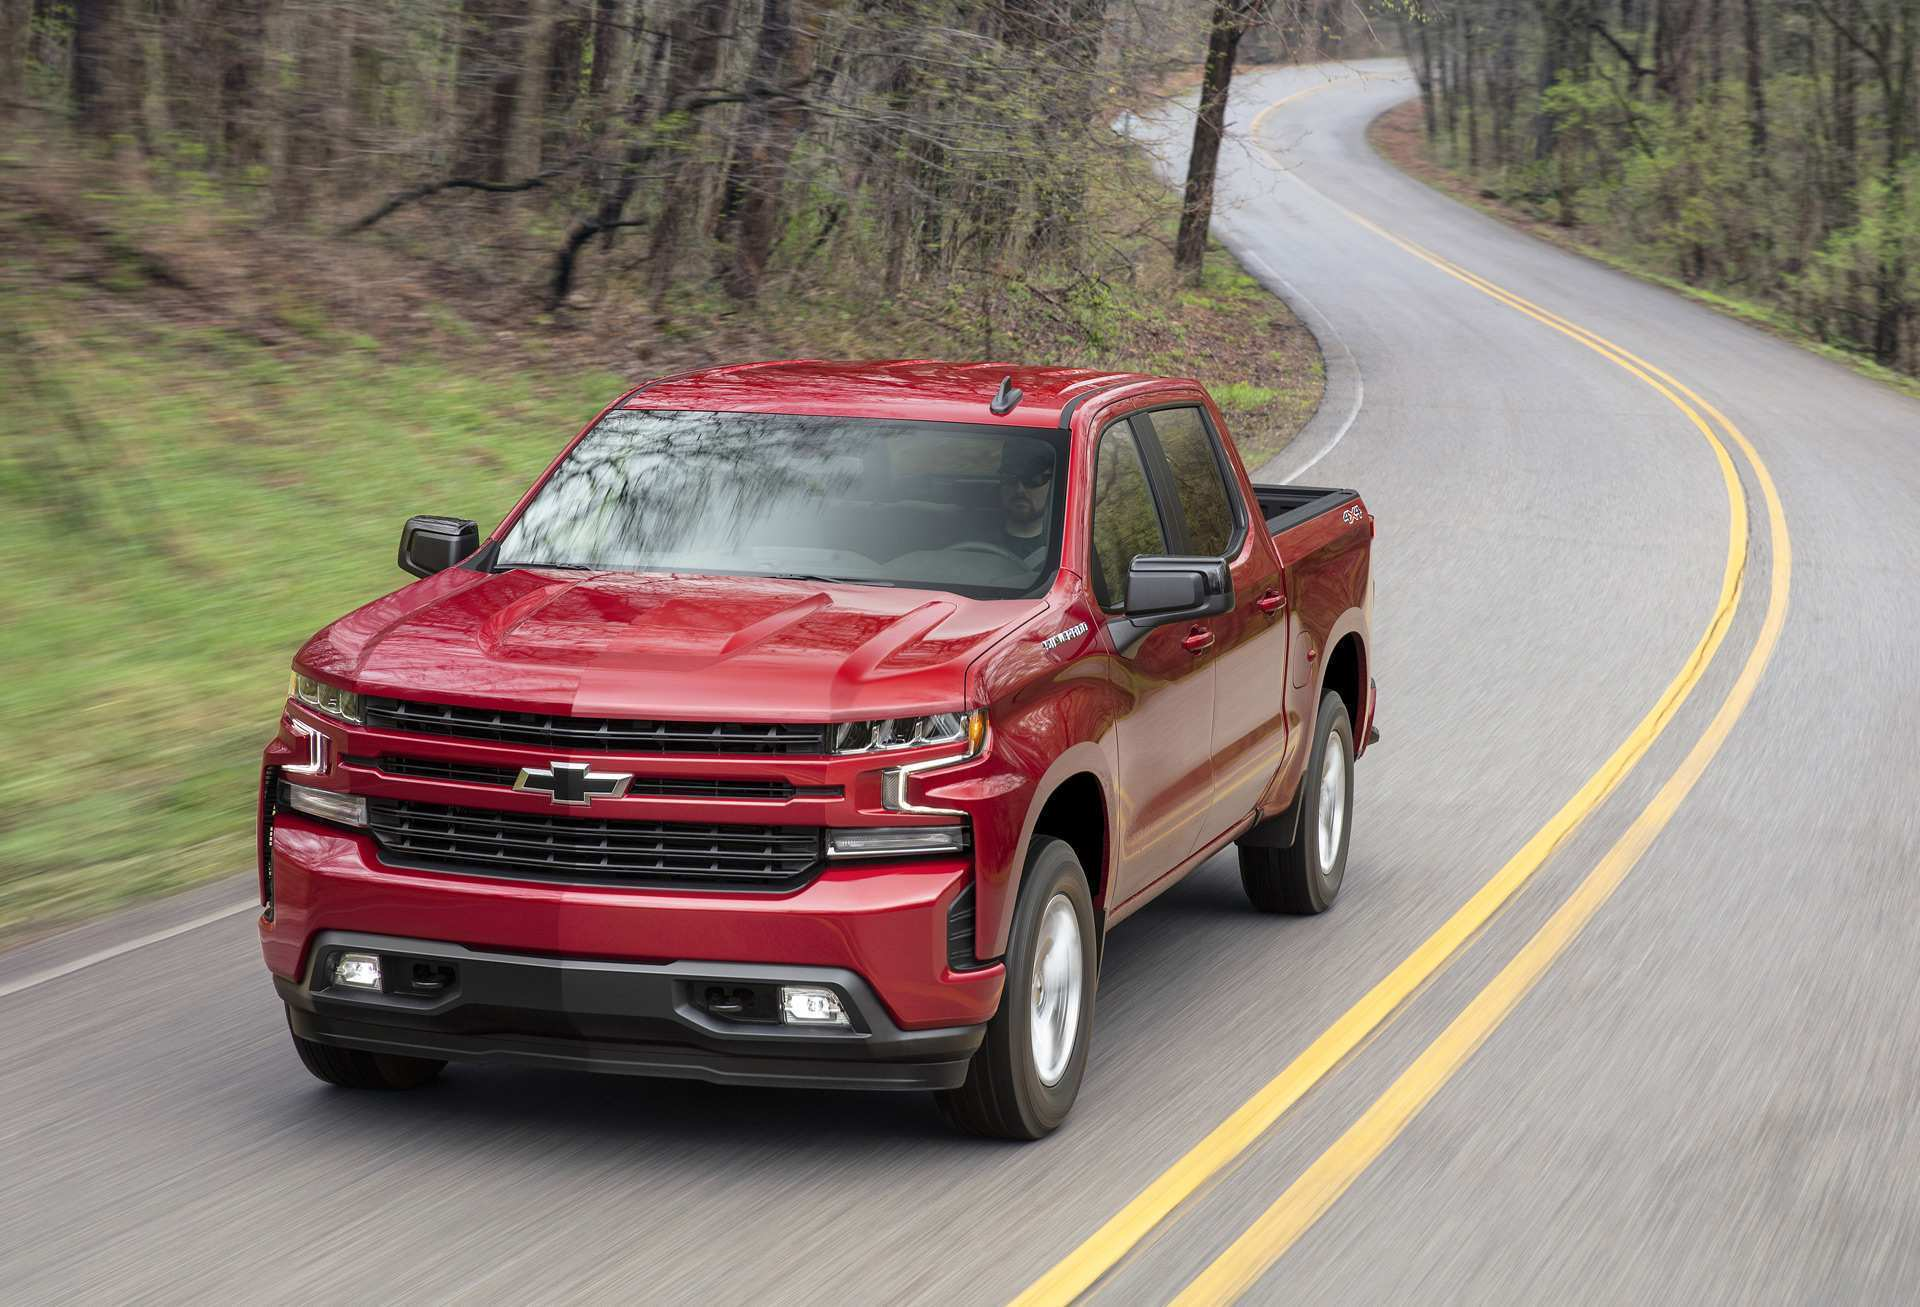 66 New 2019 Silverado 1500 Diesel Price And Release Date